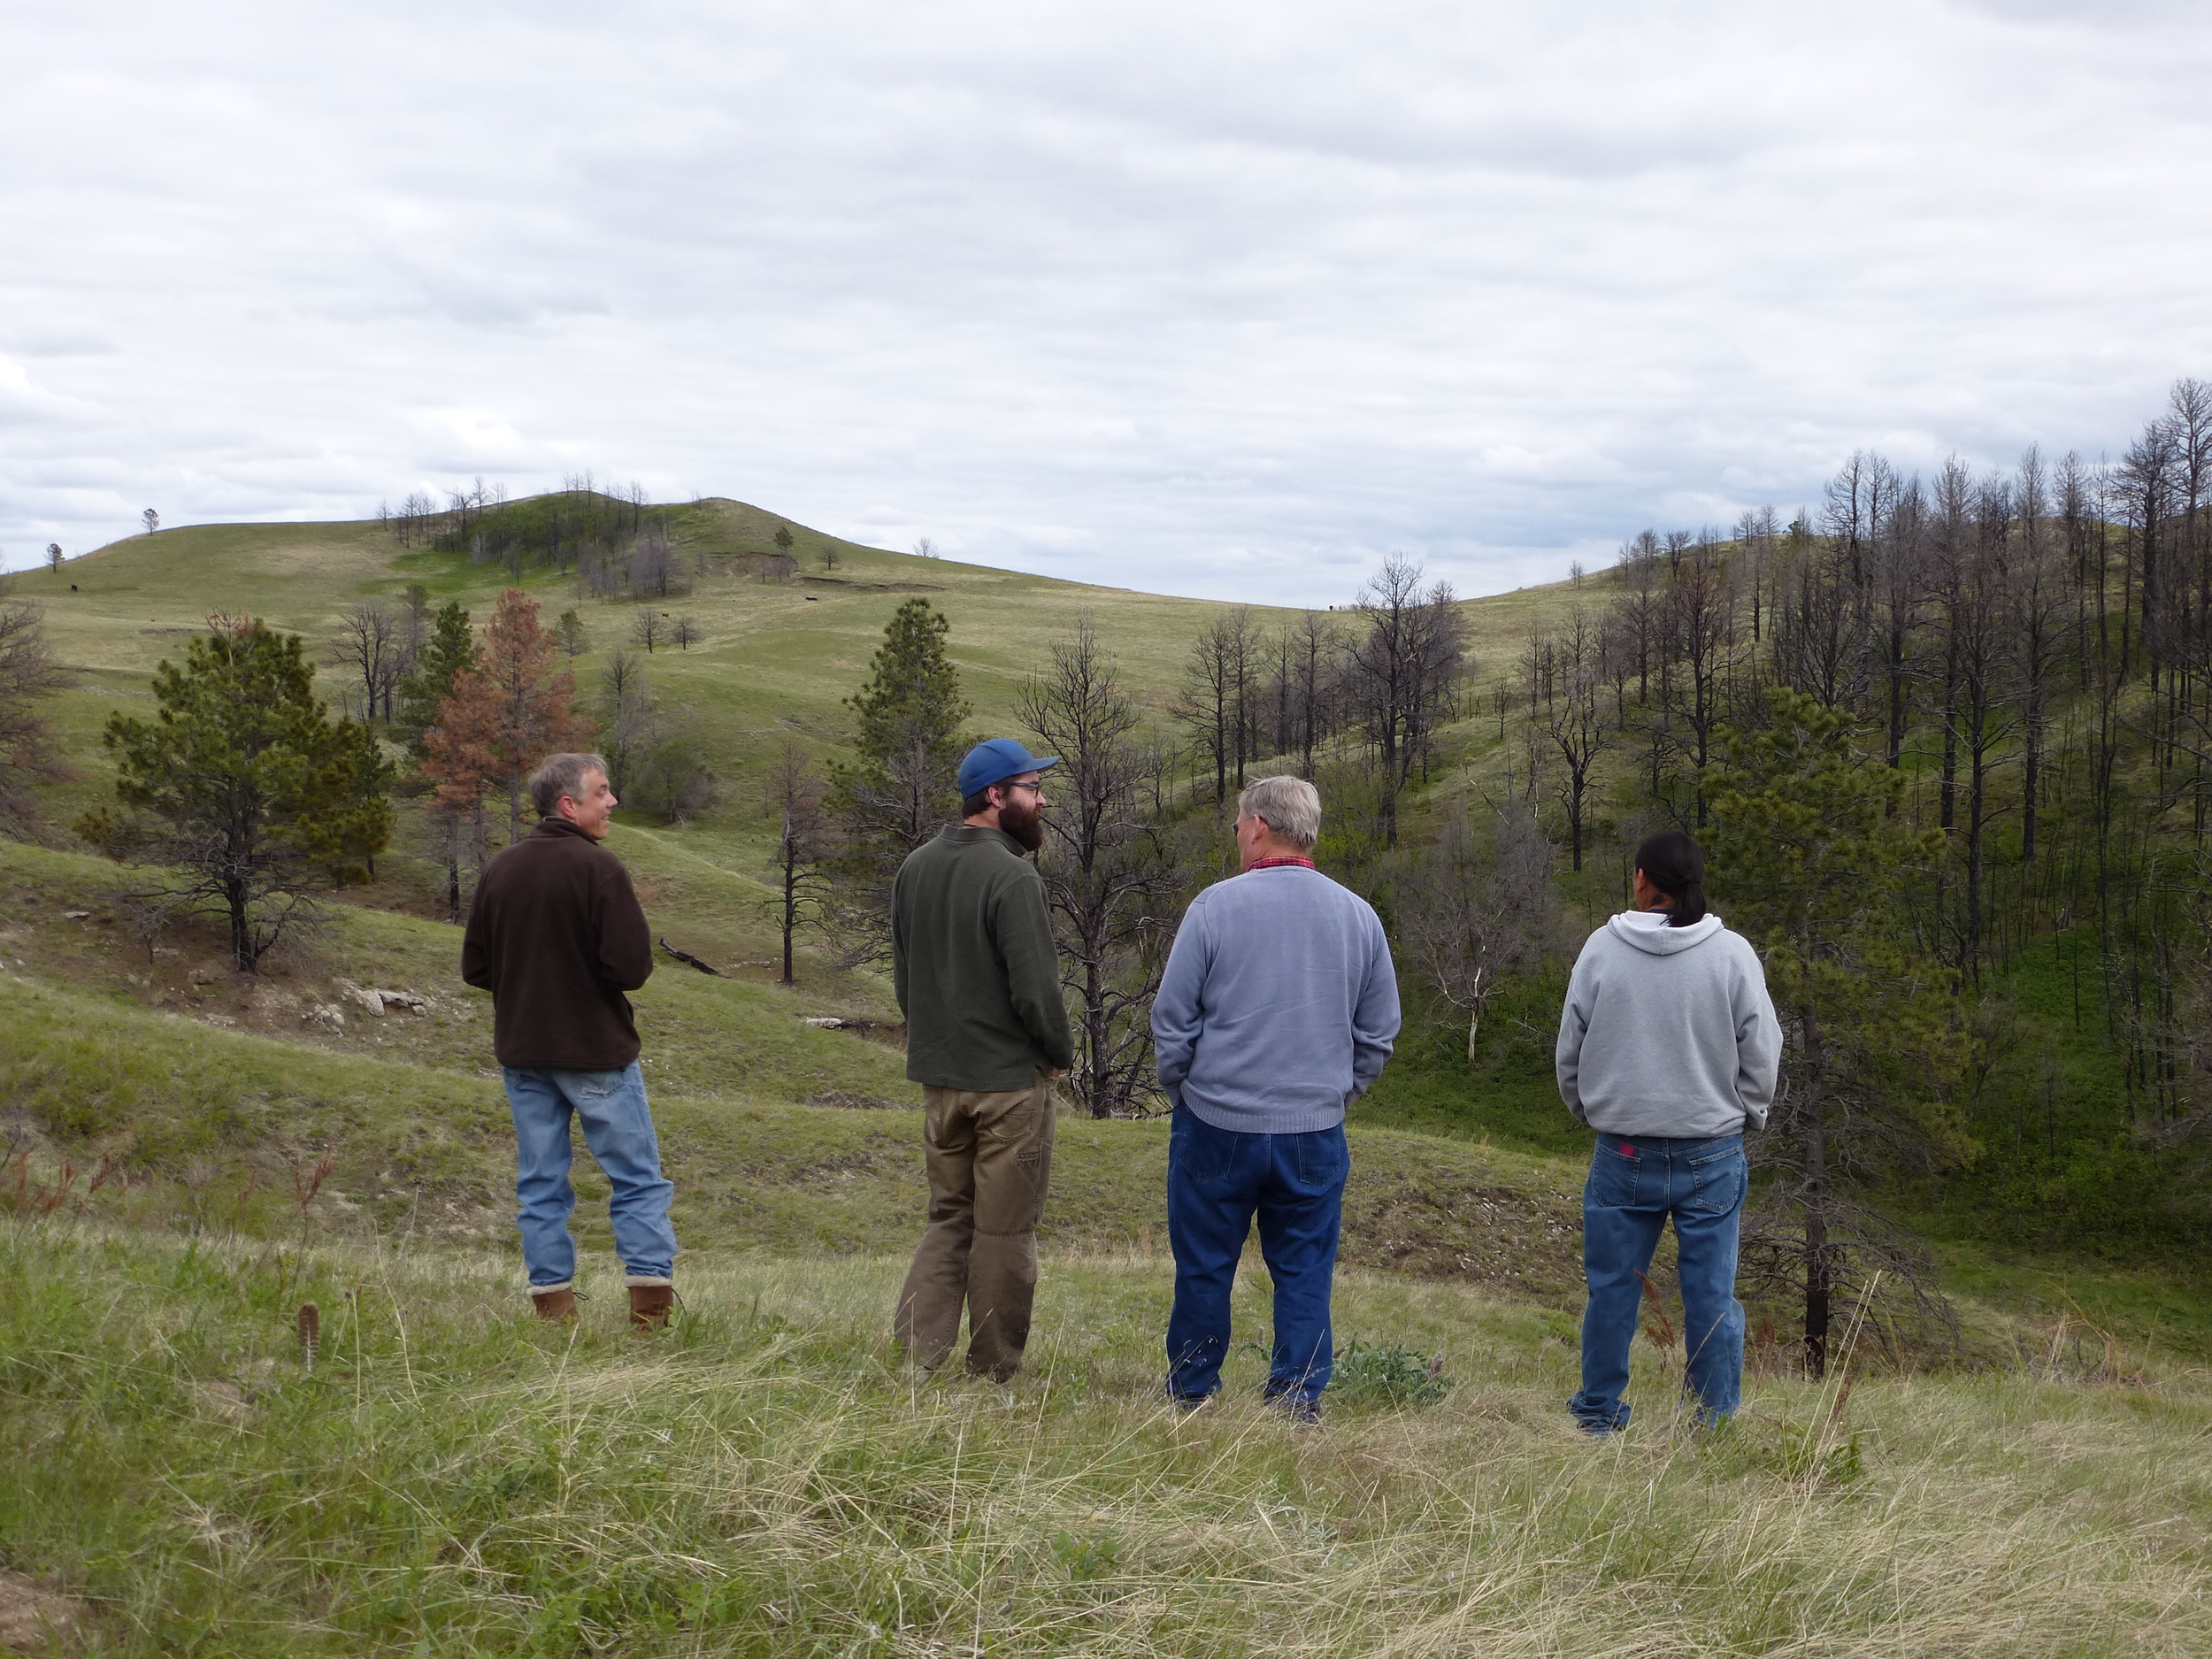 TWP and LSE Staff look out over the area that will soon be reforested with ponderosa pines.